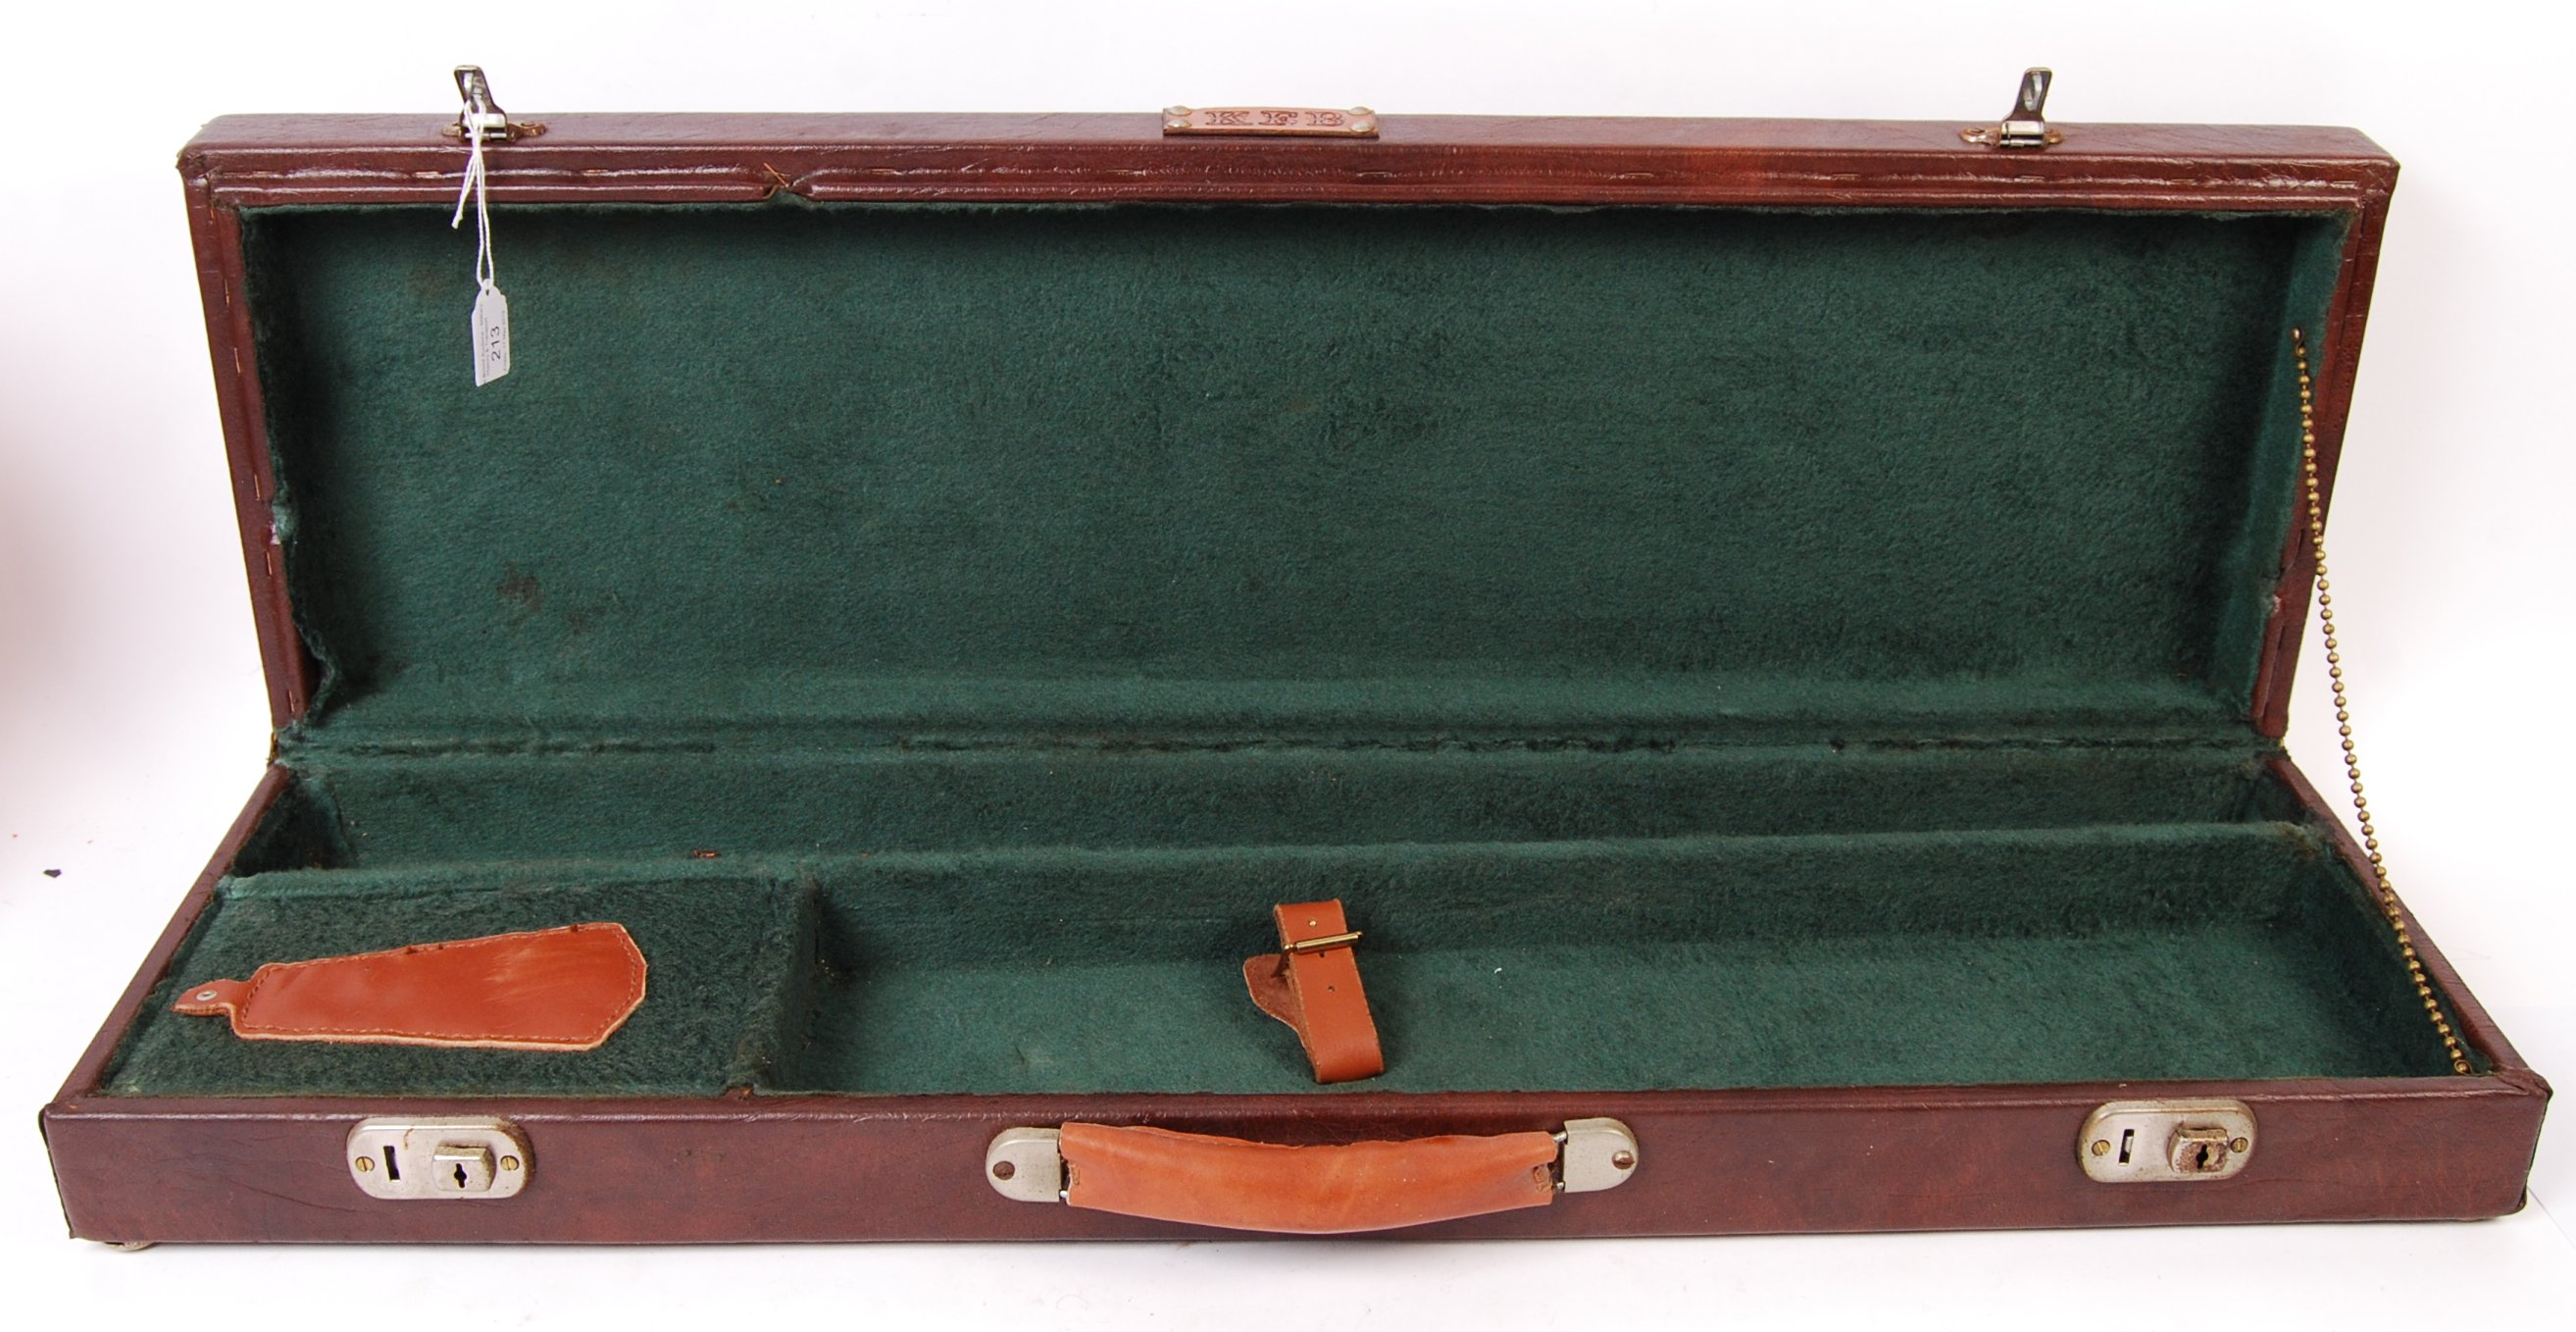 VINTAGE LEATHER SHOTGUN CASE WITH FITTED INTERIOR - Image 3 of 3